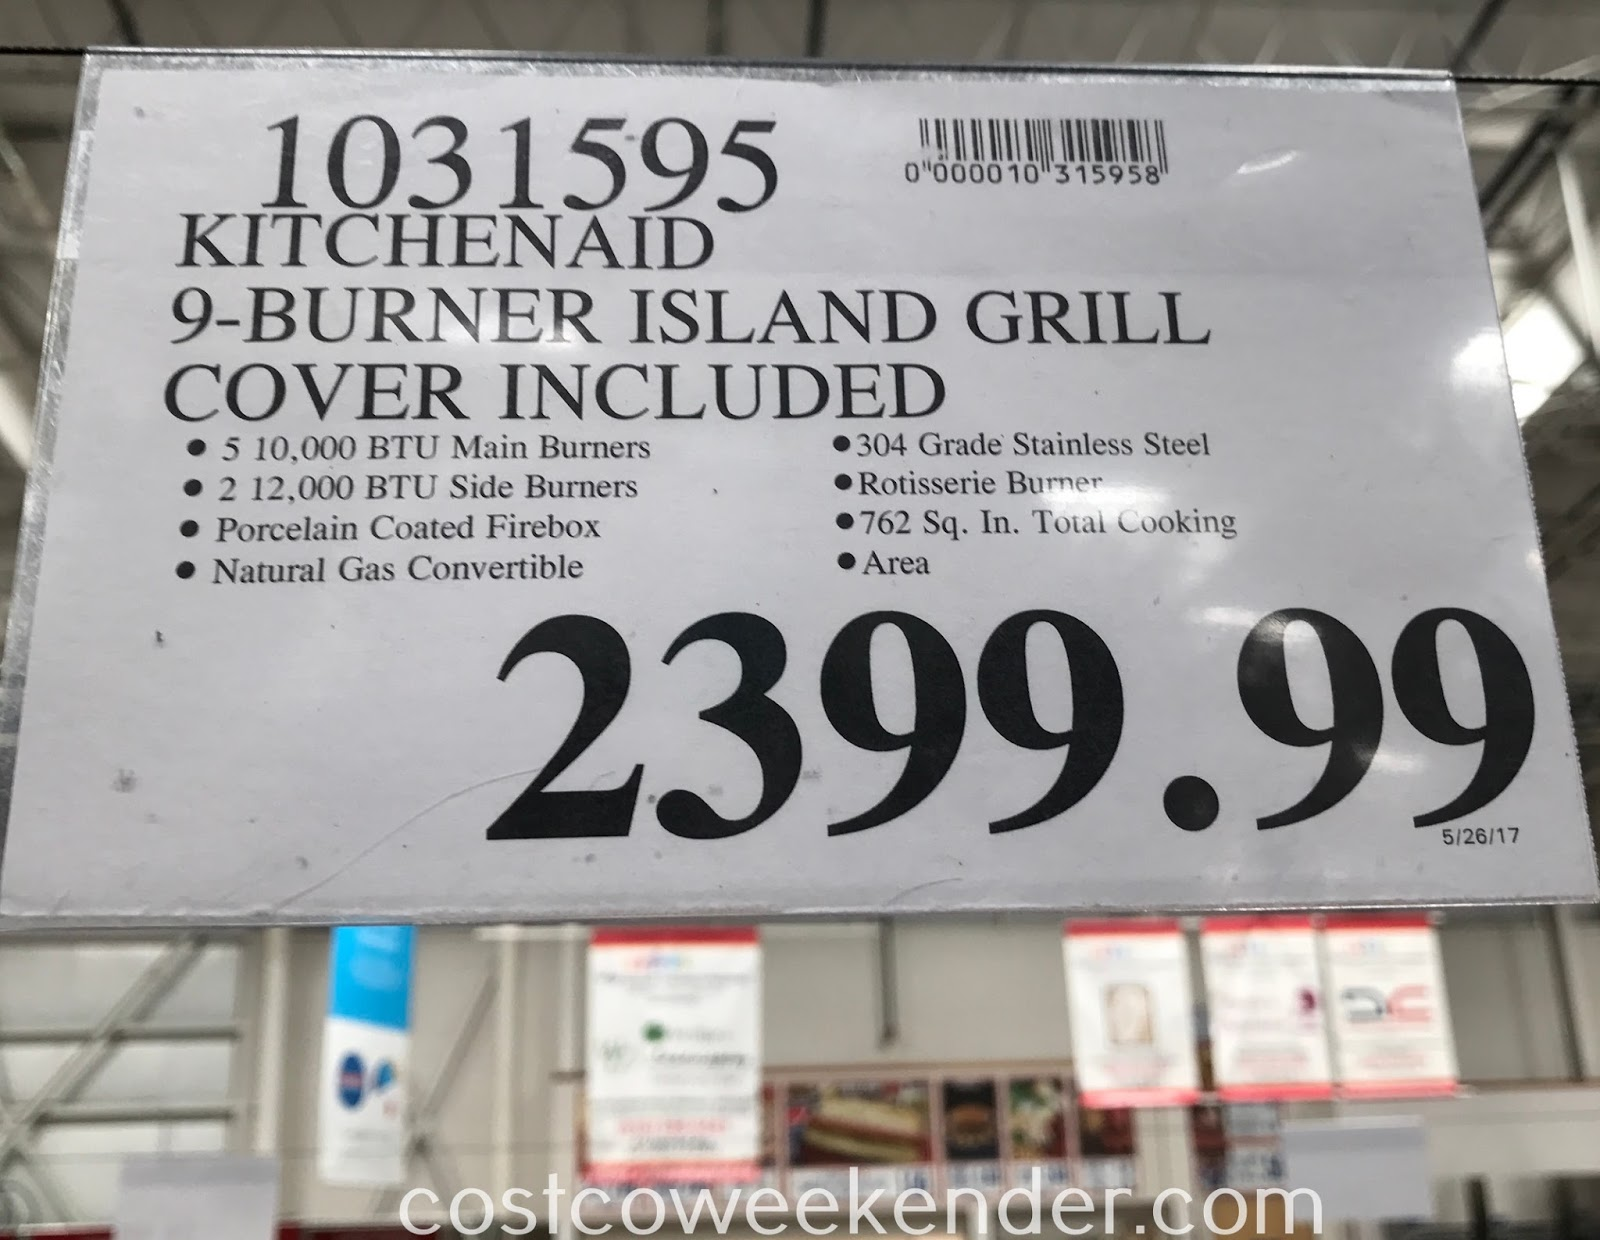 Costco 1031595 - KitchenAid Eight Burner Outdoor Island Gas Grill with Rotisserie Burner: great for any backyard or patio